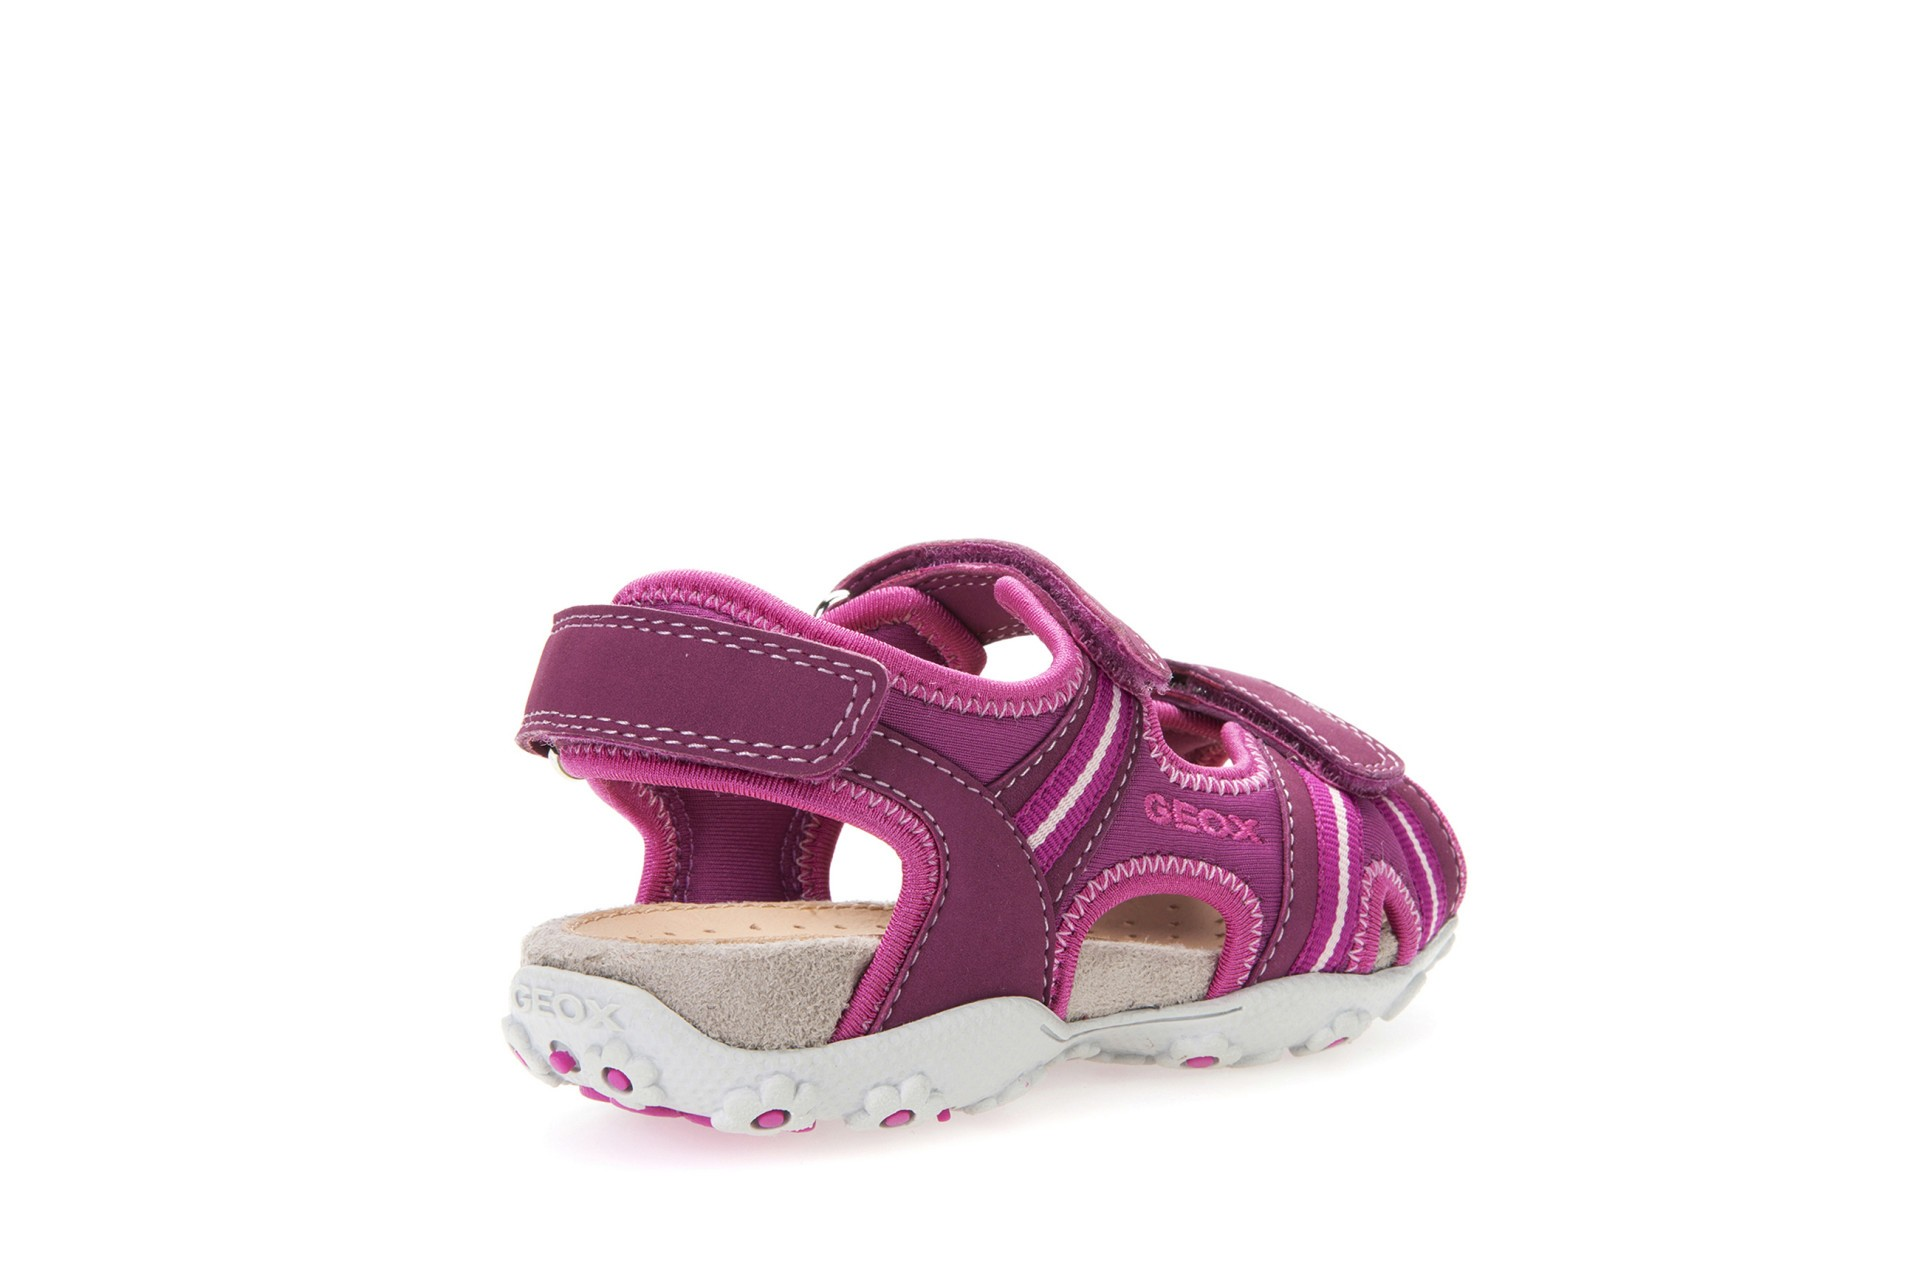 Geox Roxanne Fuchsia Sandals Geox Kids Shoes Little